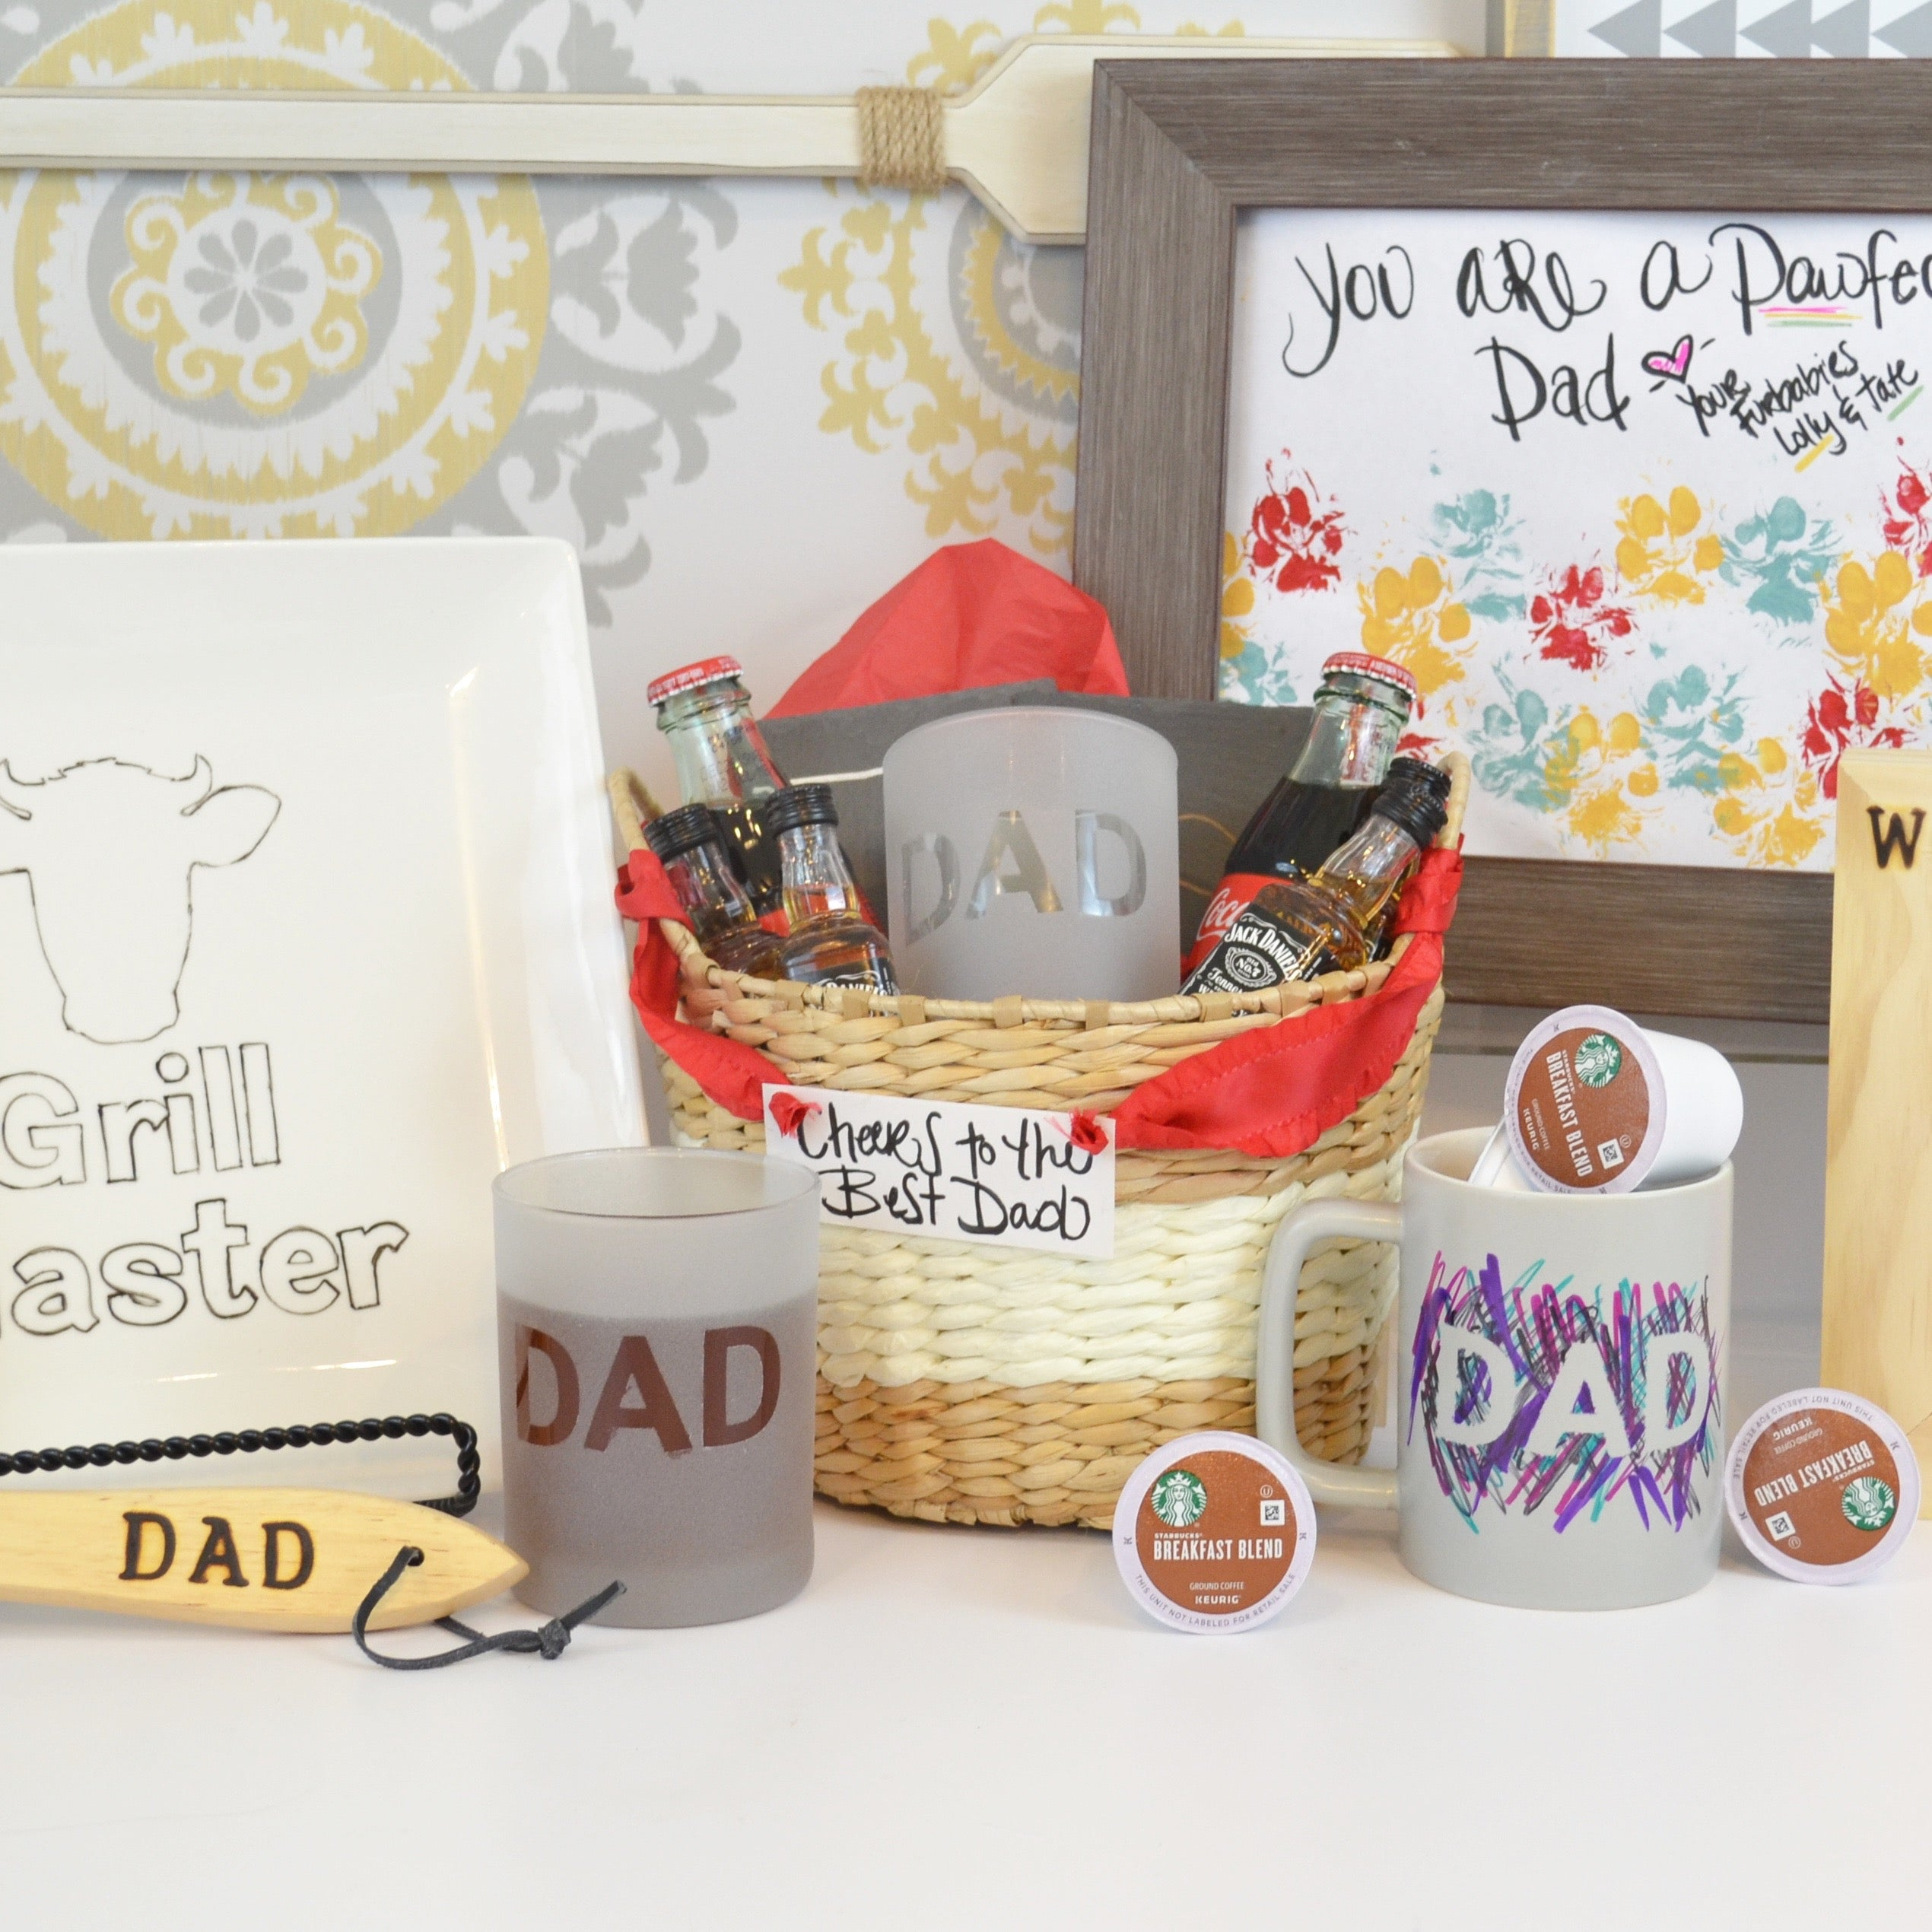 DIY Father's Day Gifts Under $30